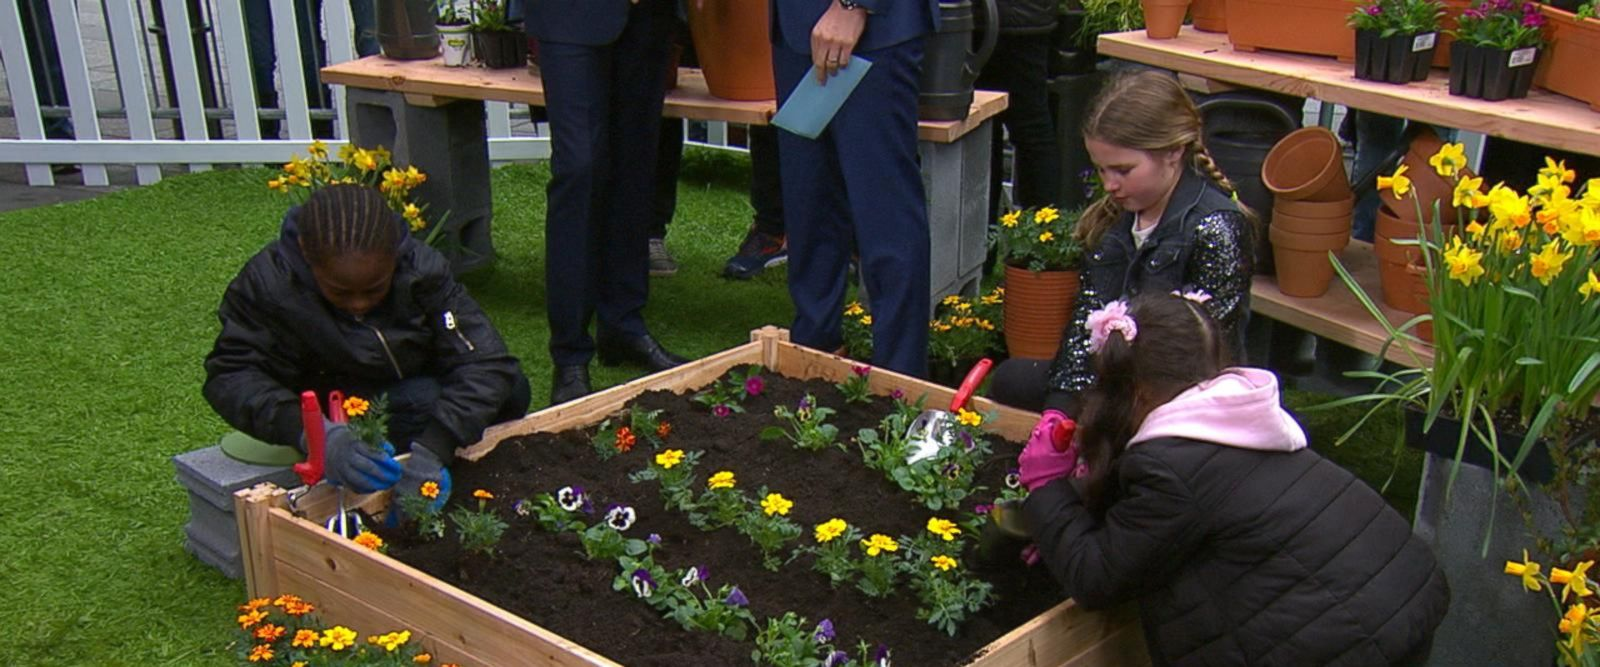 VIDEO: SAP pledges to plant 5 million trees by 2025 on 'GMA'